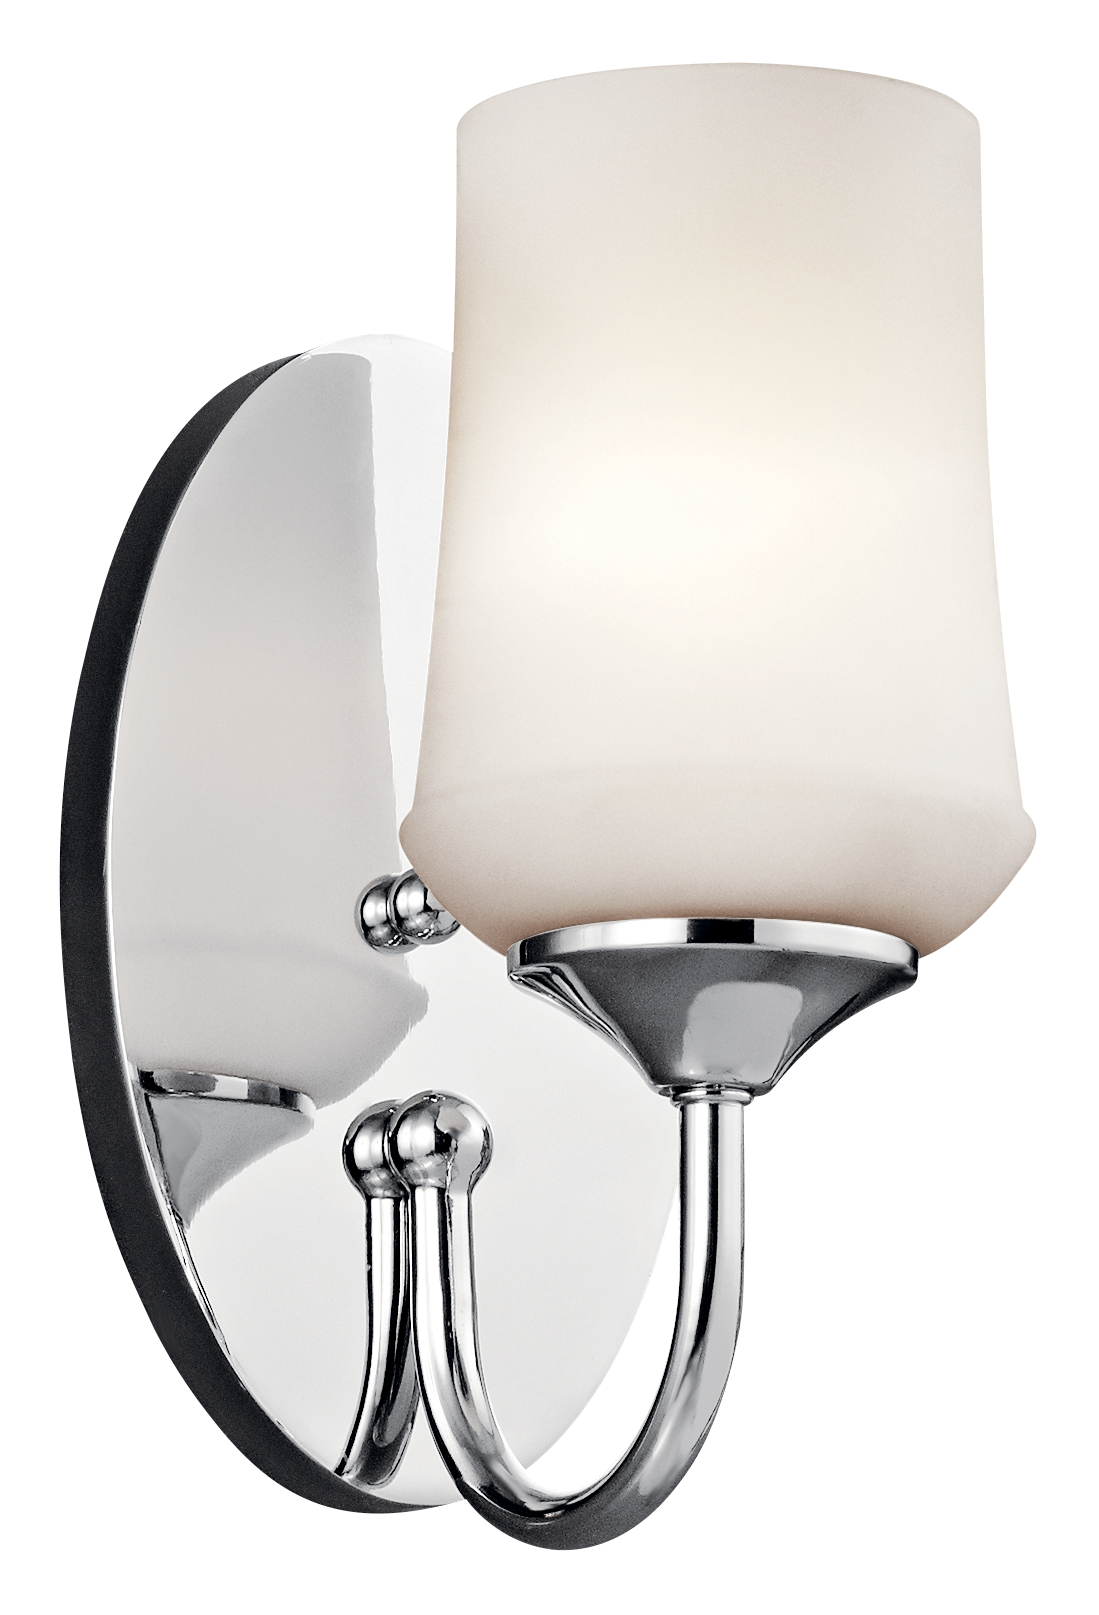 Kichler Aubrey Outdoor Damp Wall Light with Satin Etched Cased Opal Shade - Chrome (45568CH)